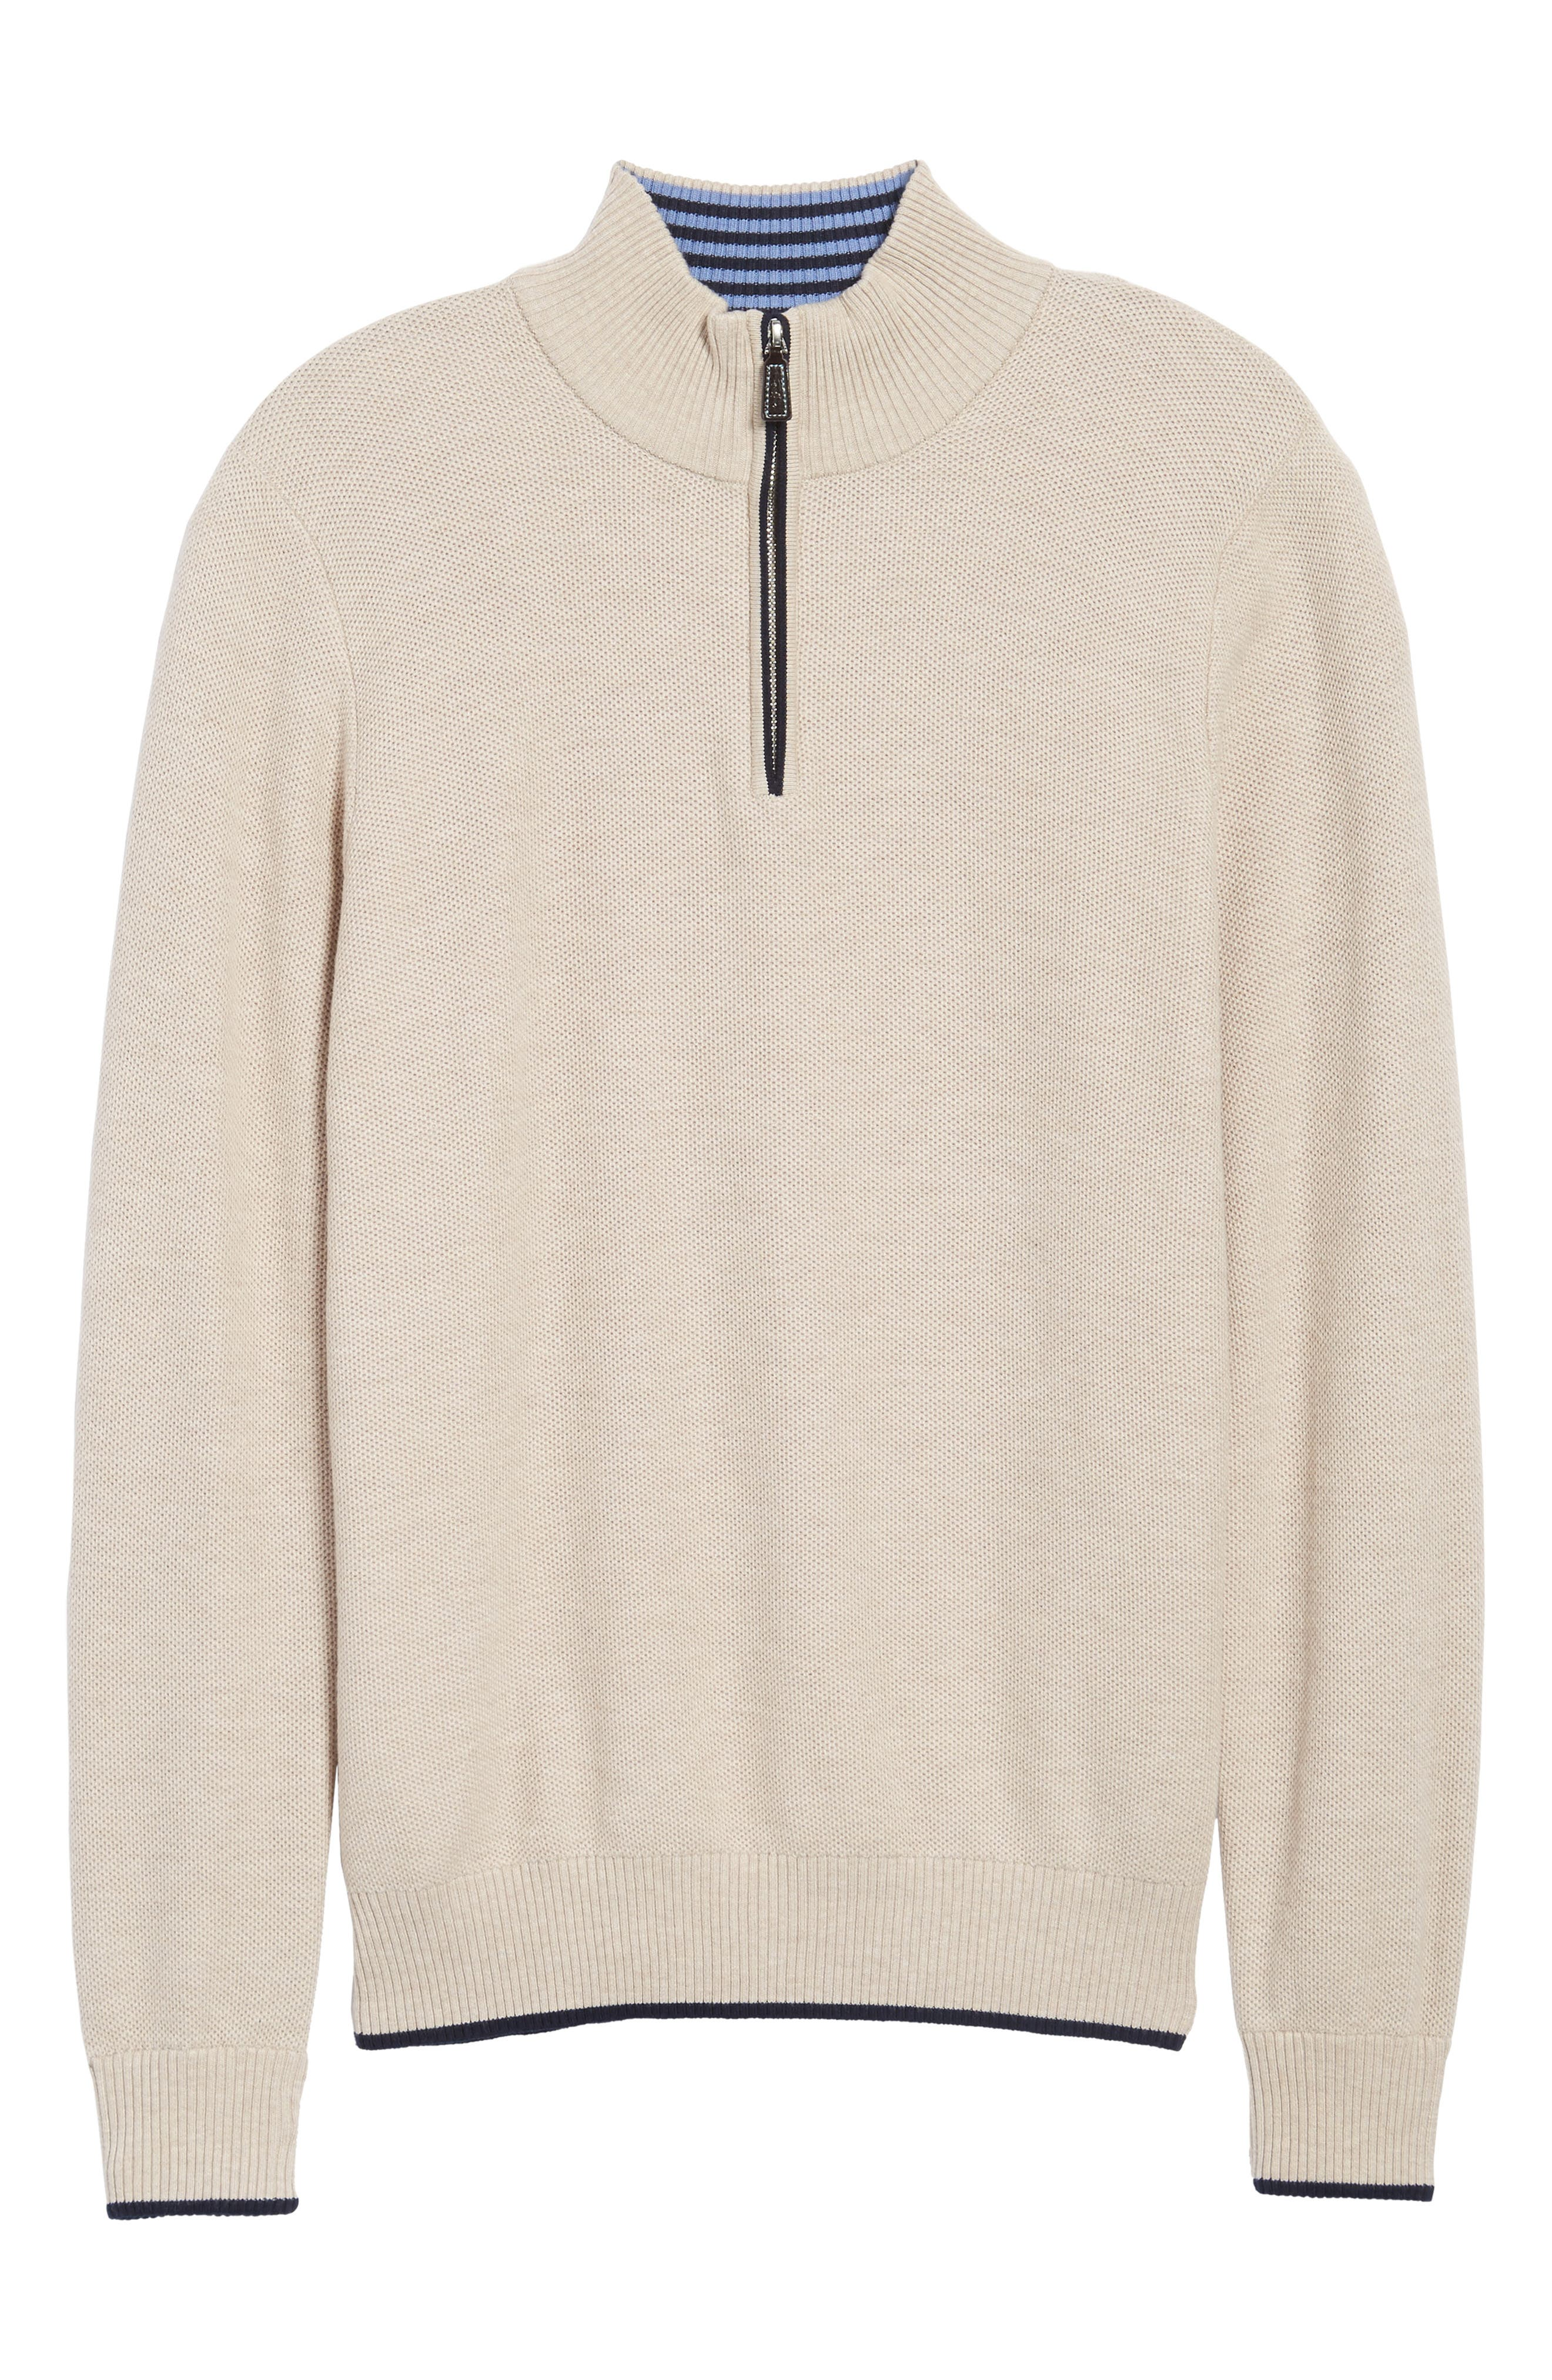 Sikes Tipped Quarter Zip Sweater,                             Alternate thumbnail 6, color,